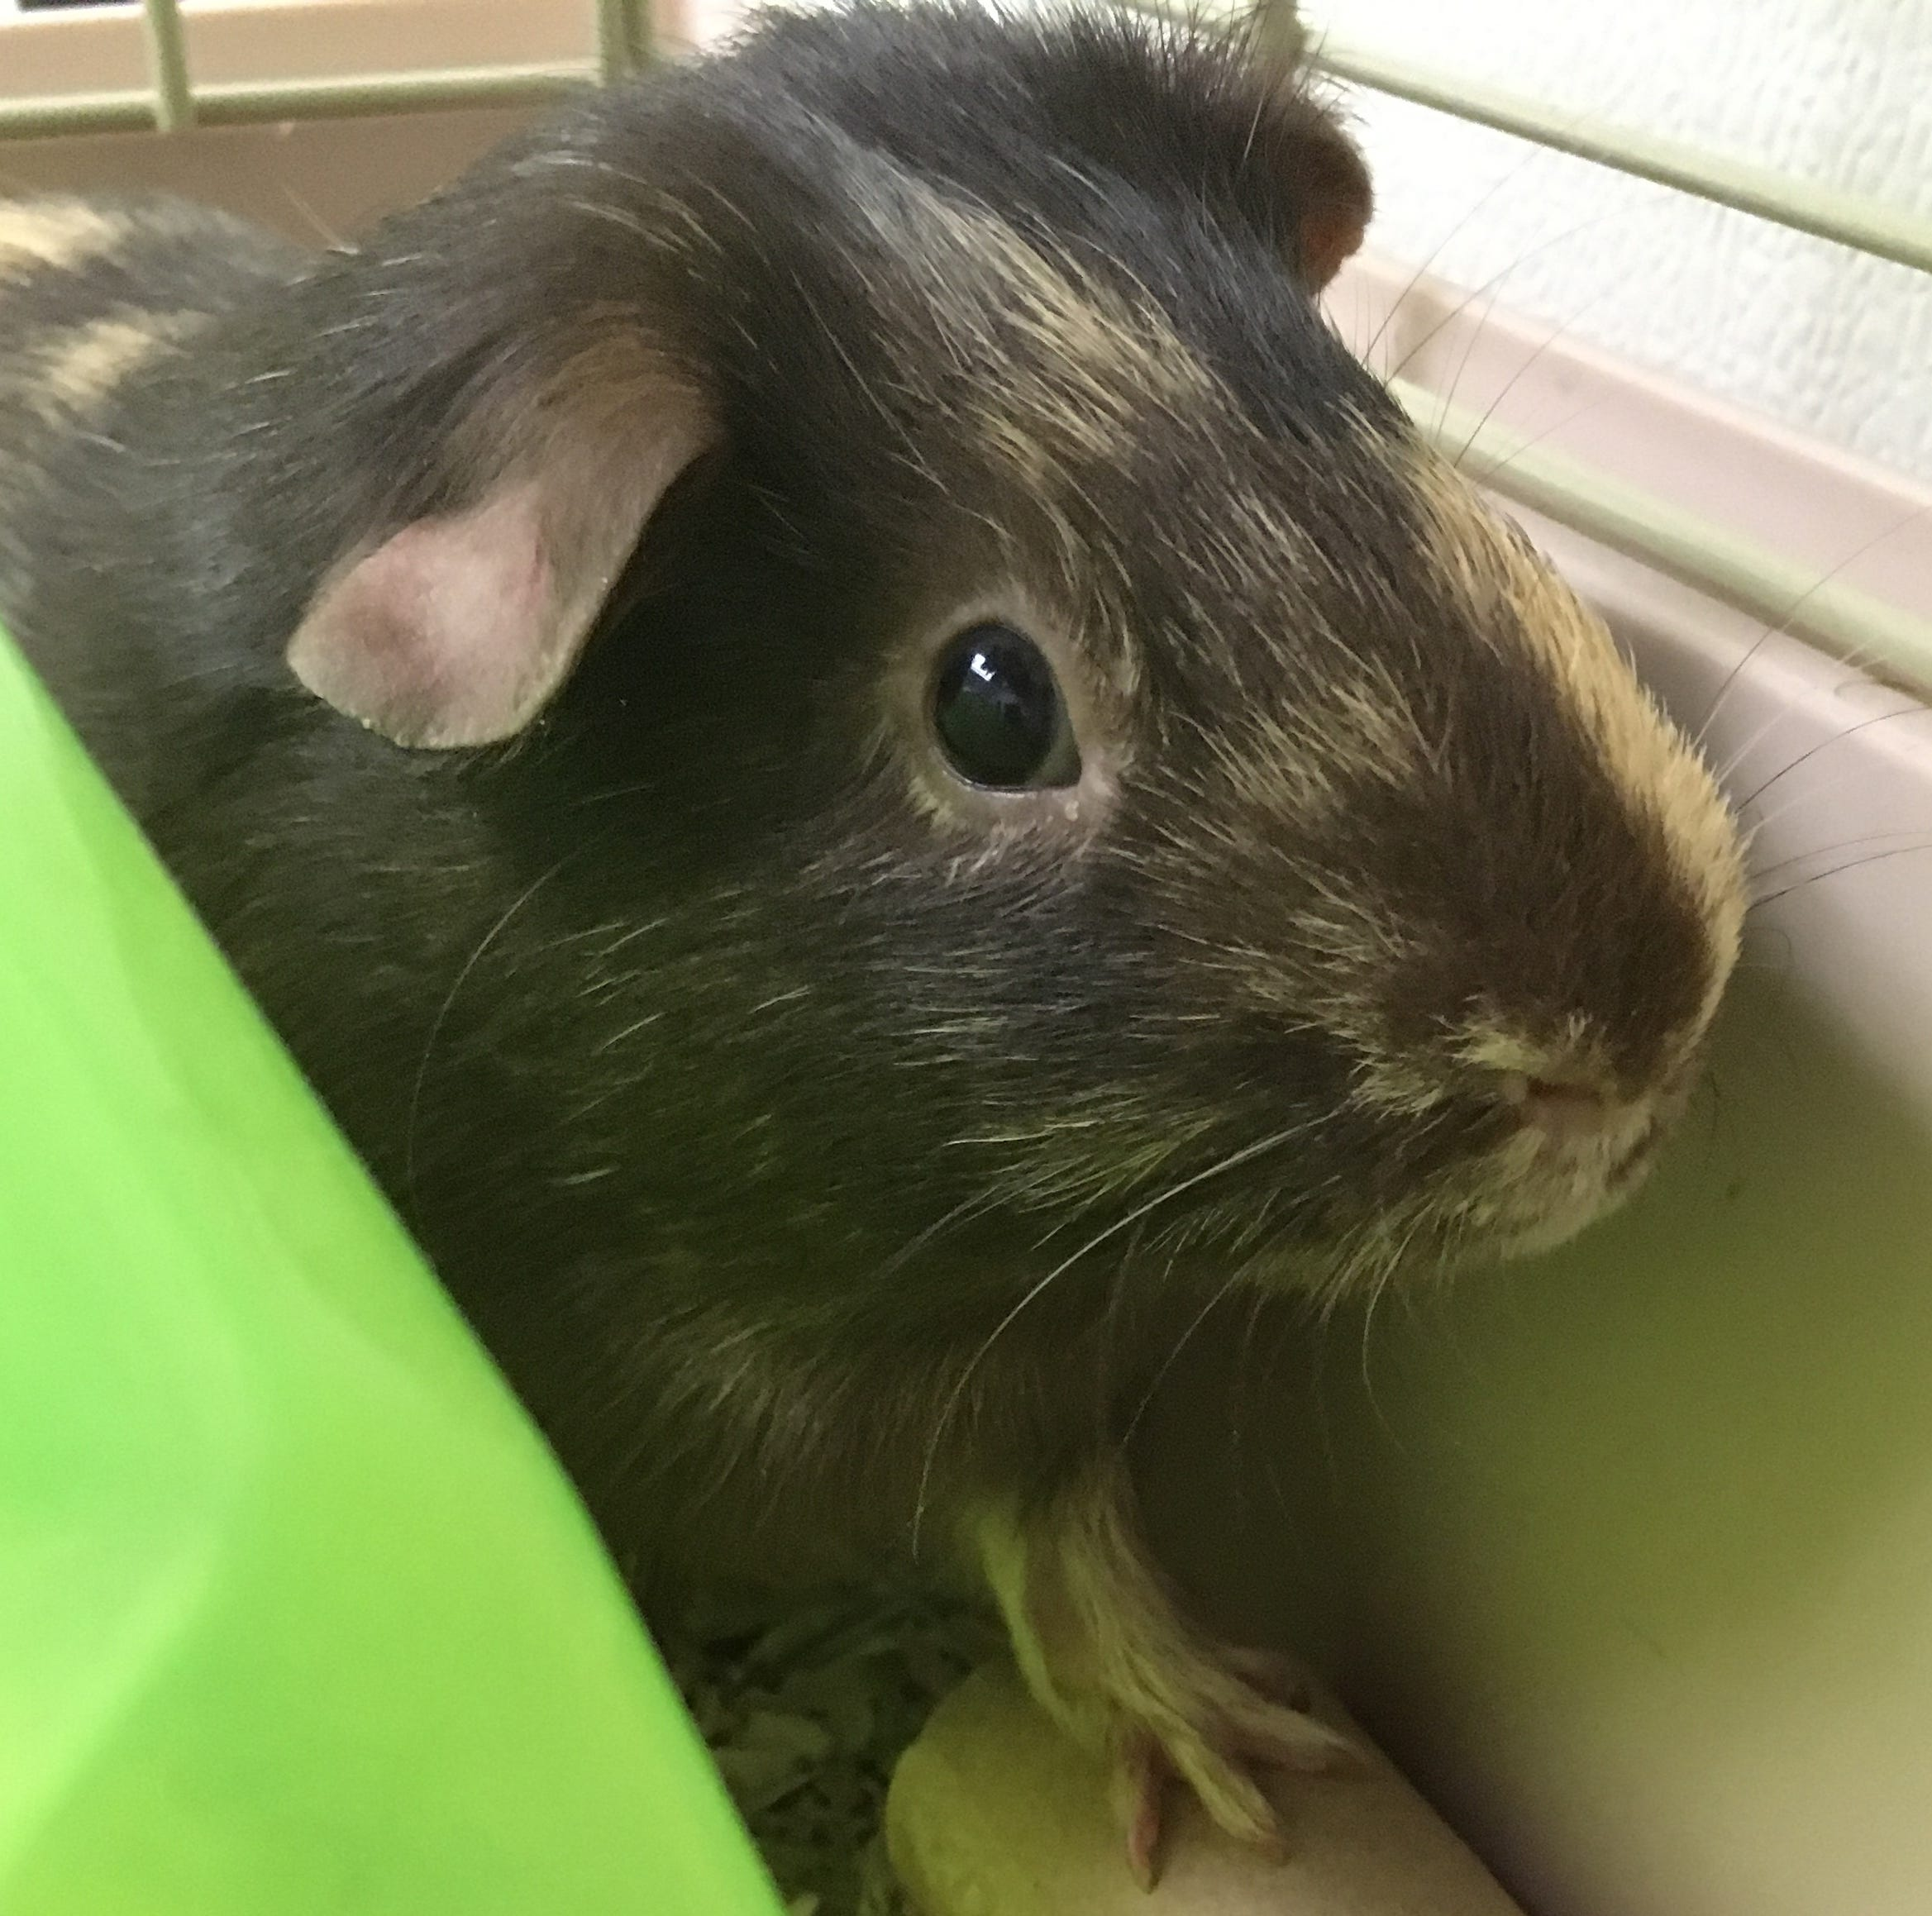 Oshkosh Northwestern Pet of the Week: Saturn the guinea pig likes playing and eating